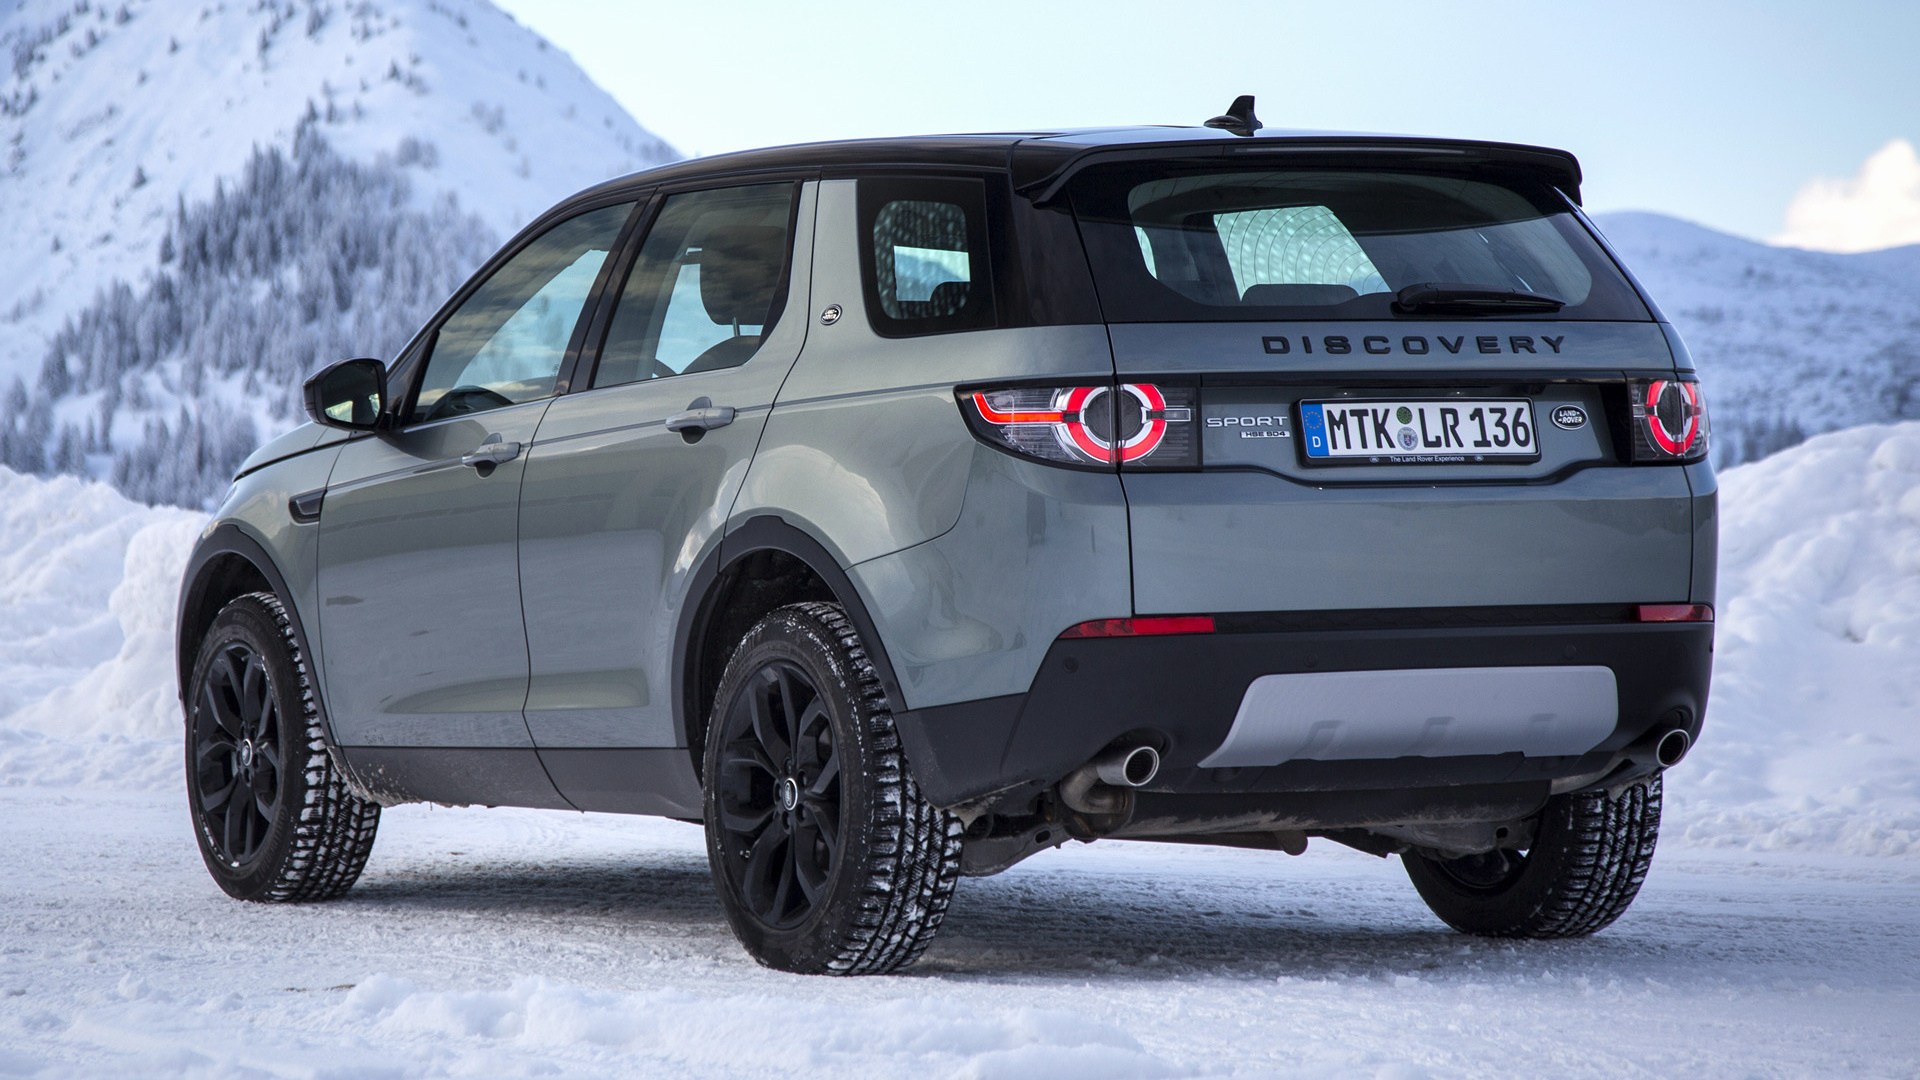 2015 Land Rover Discovery Sport Hse Black Design Pack